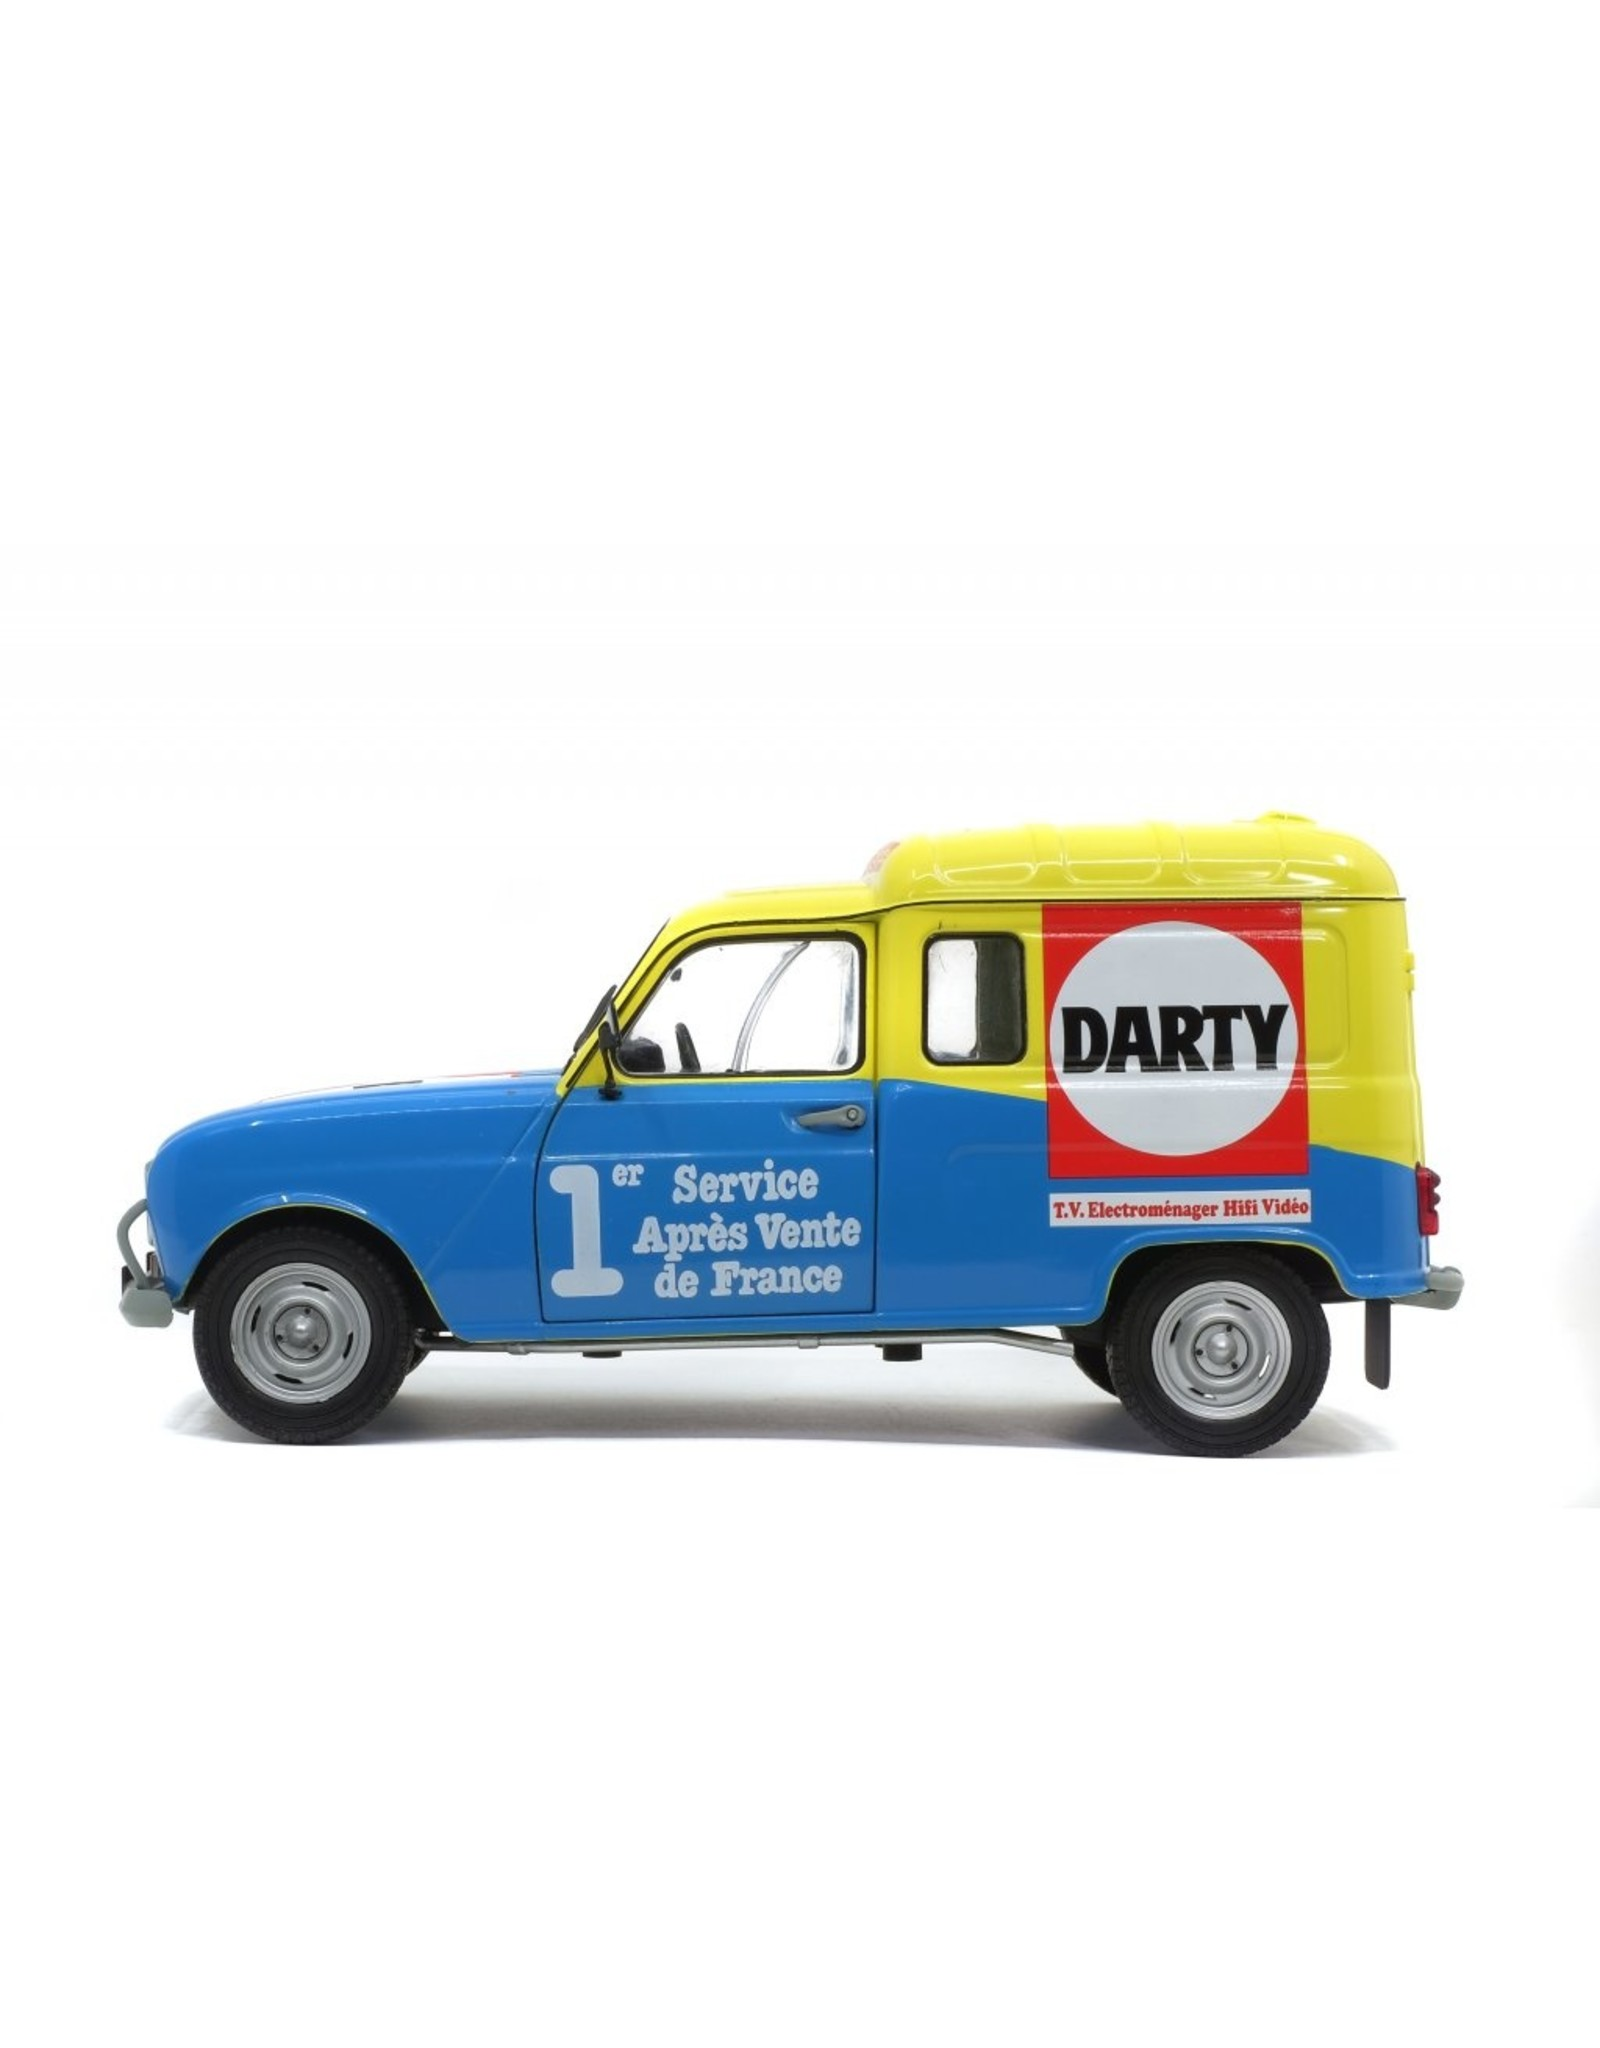 Renault Renault 4 F4 Darty 1988 - 1:18 - Solido